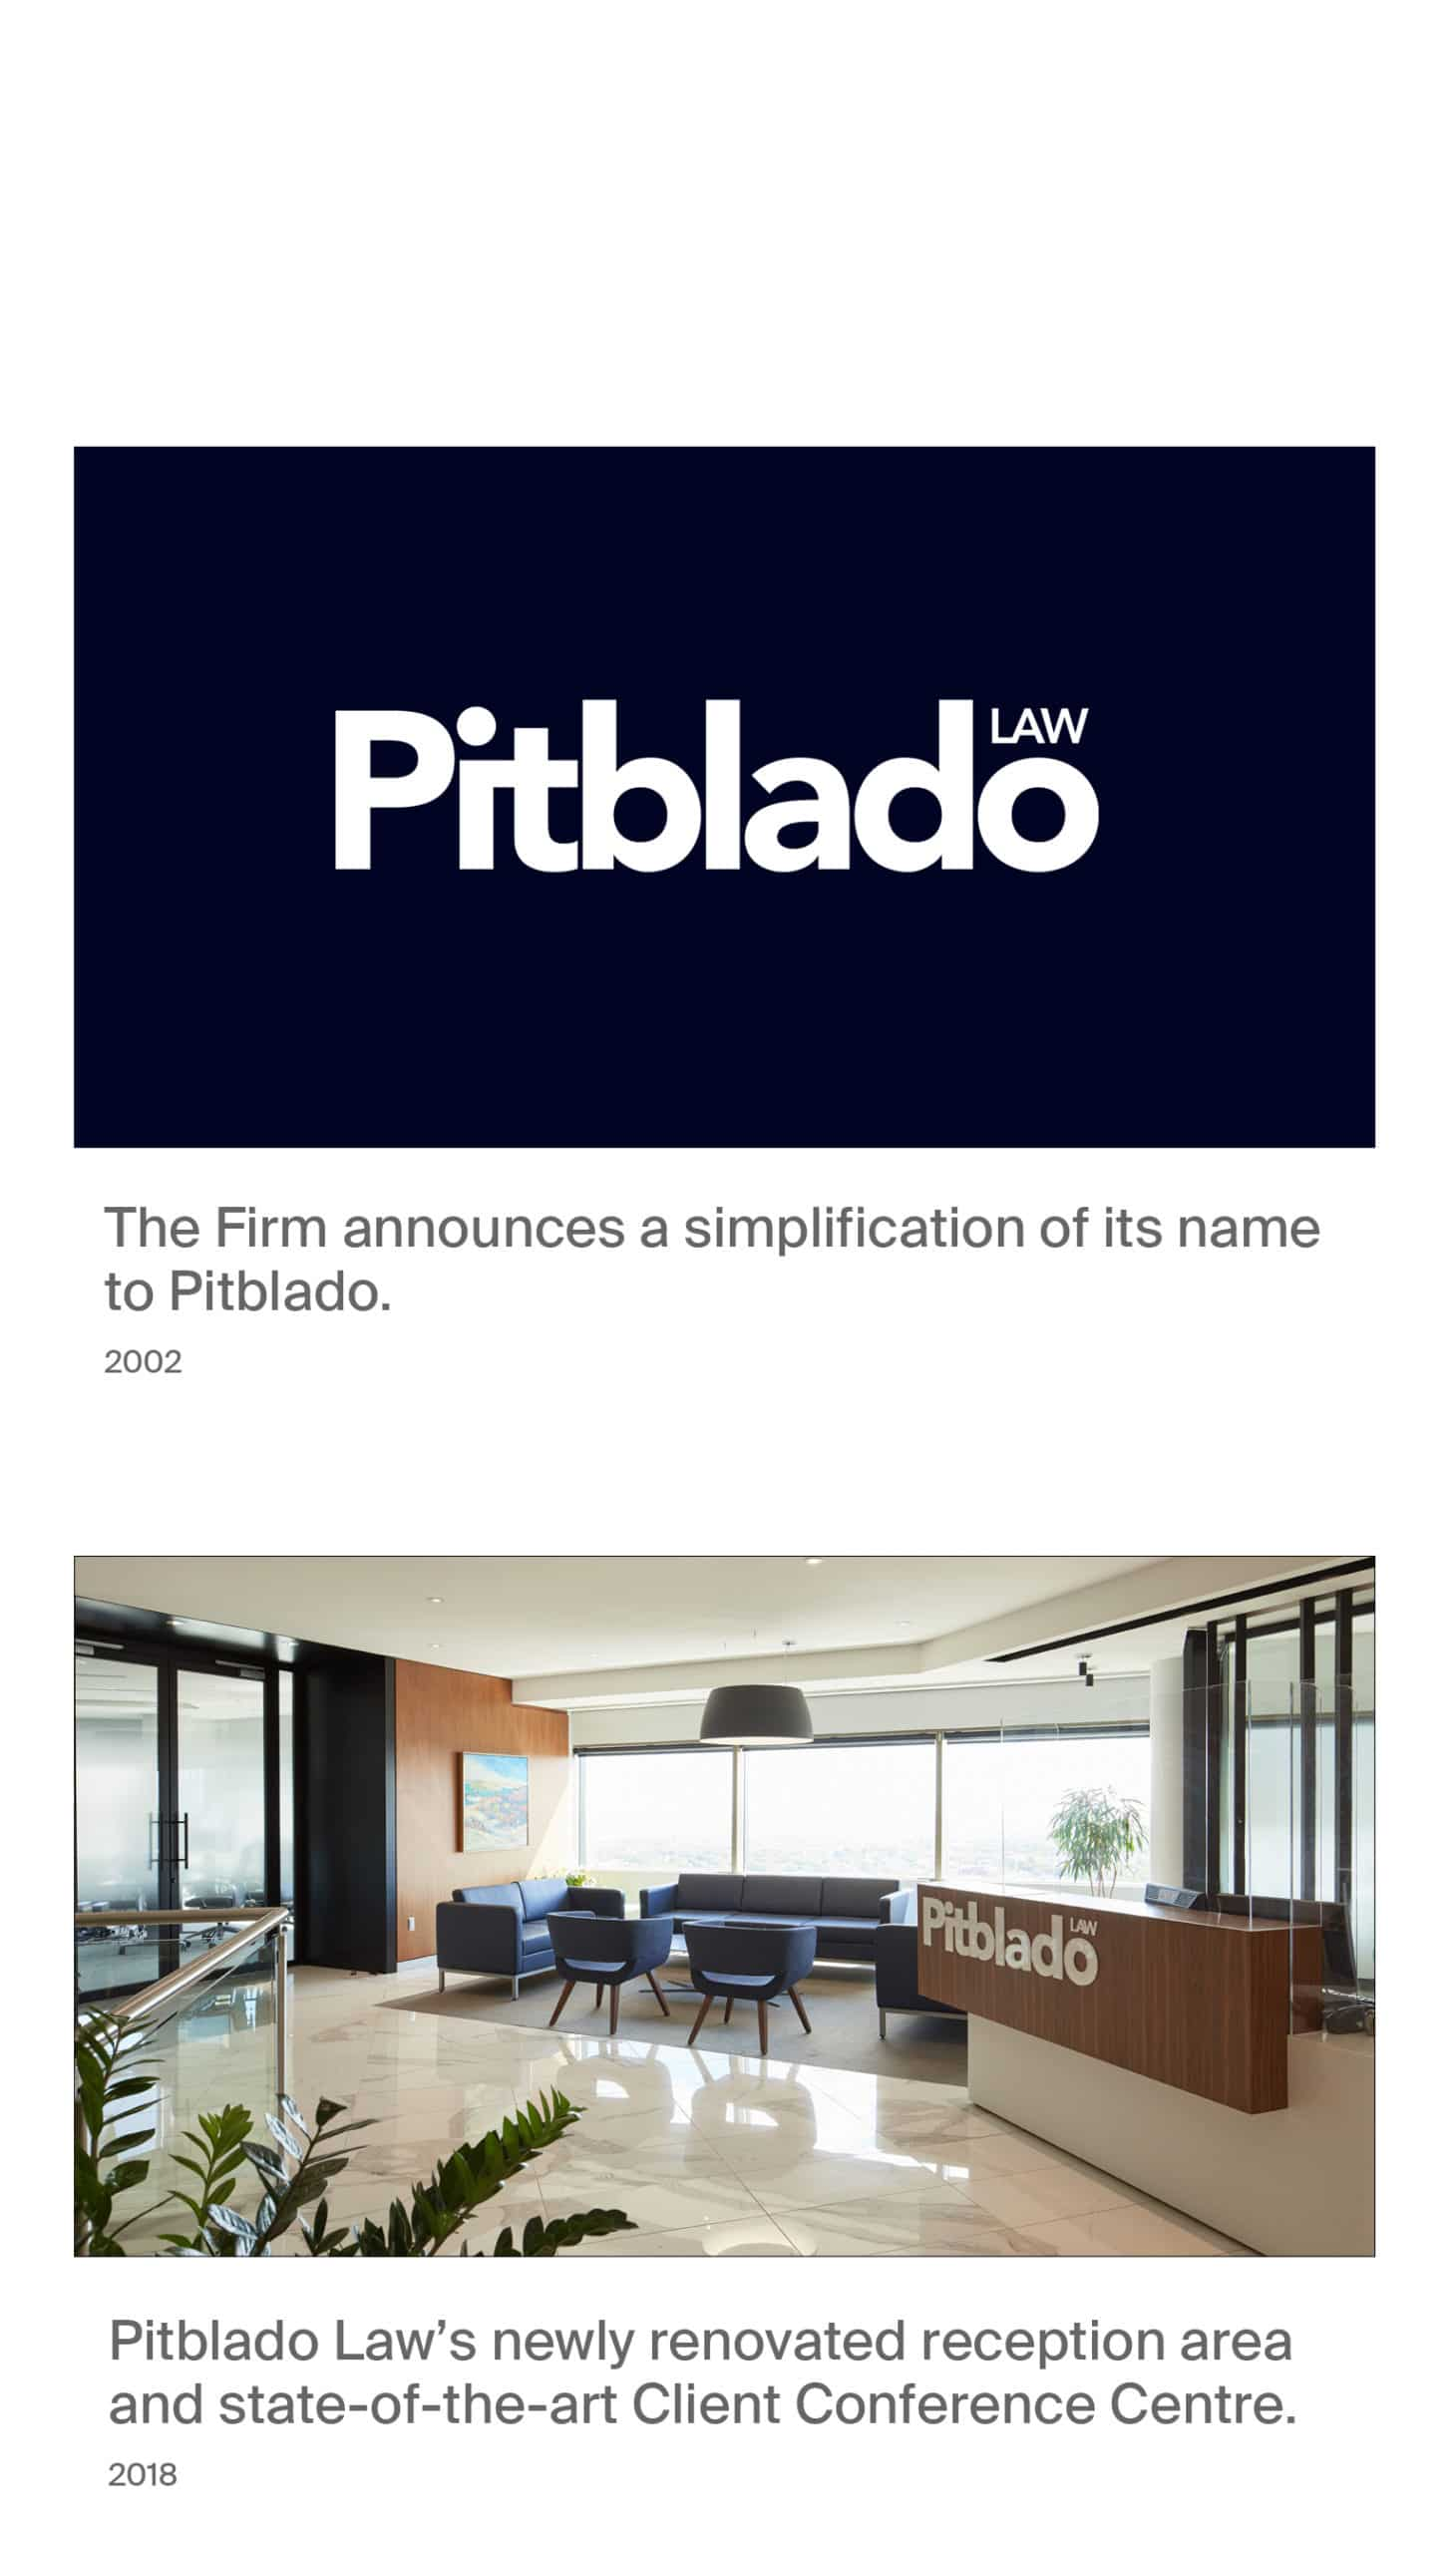 Pitblado announces simplification of its name in 2002 with new logo. Image 2, newly renovated office reception area and state-of-the-art Client Conference Centre.